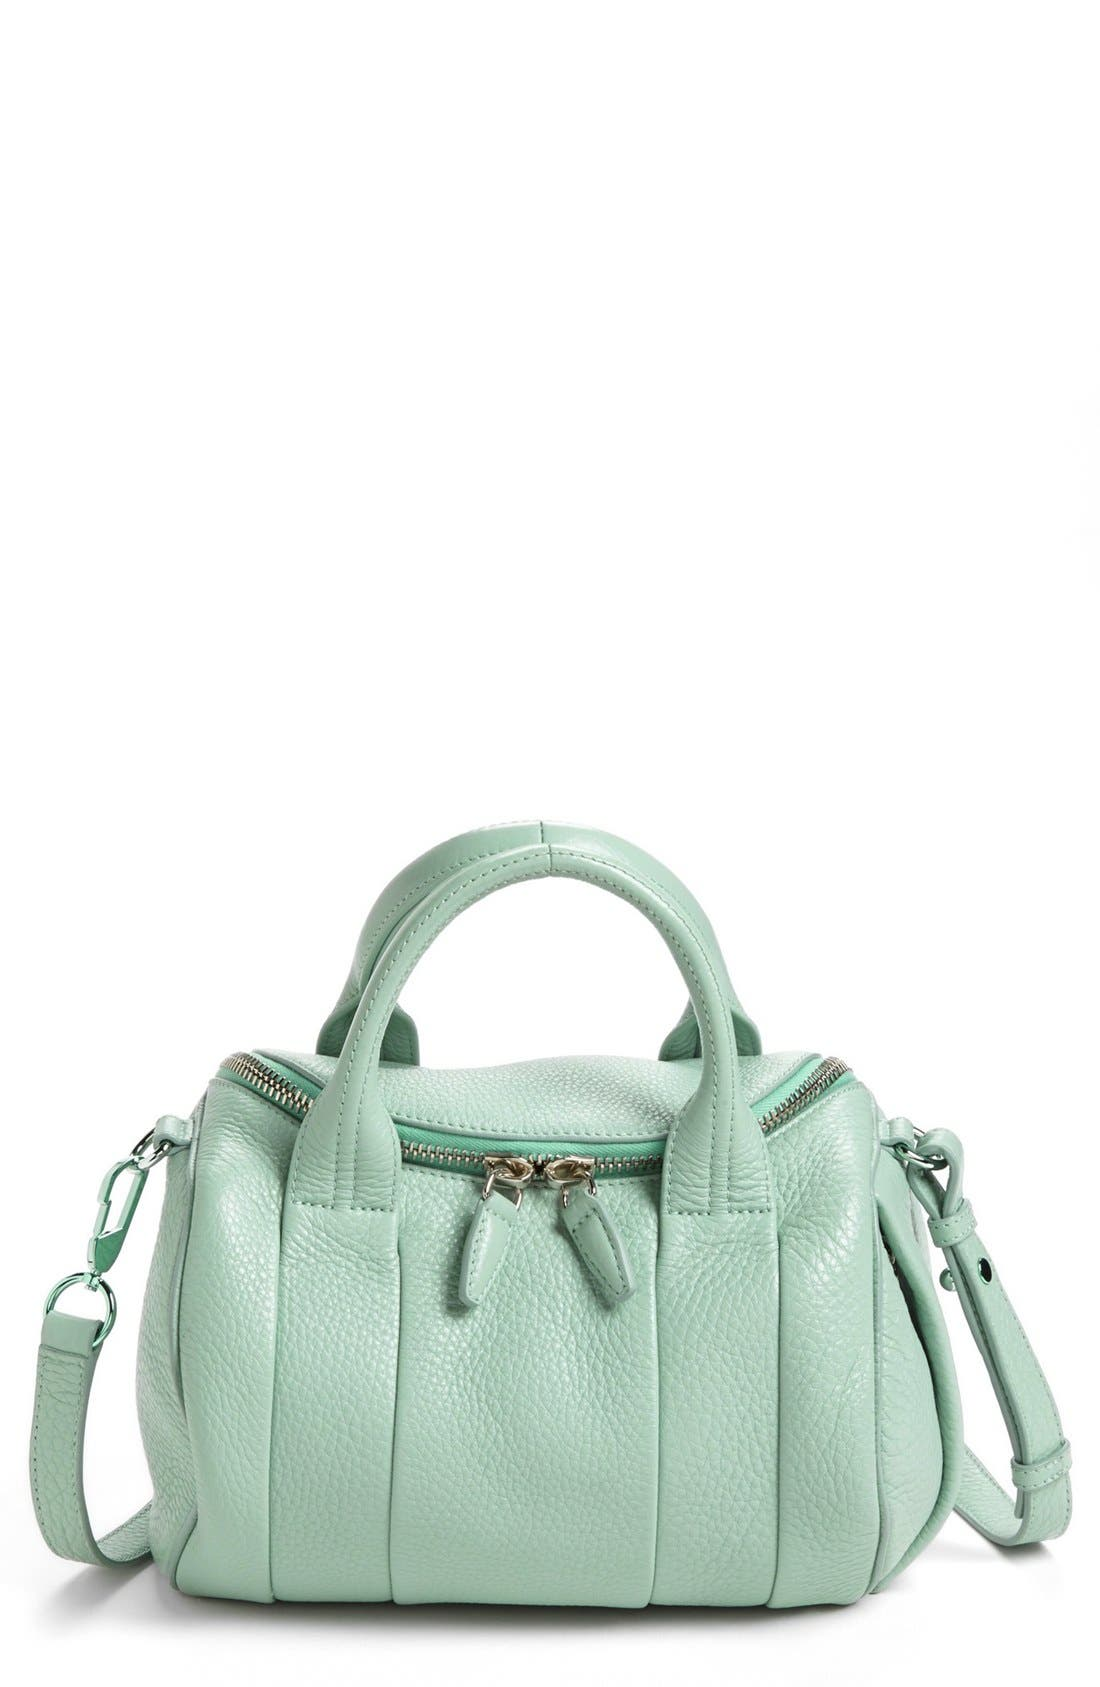 Alternate Image 1 Selected - Alexander Wang 'Rockie' Satchel